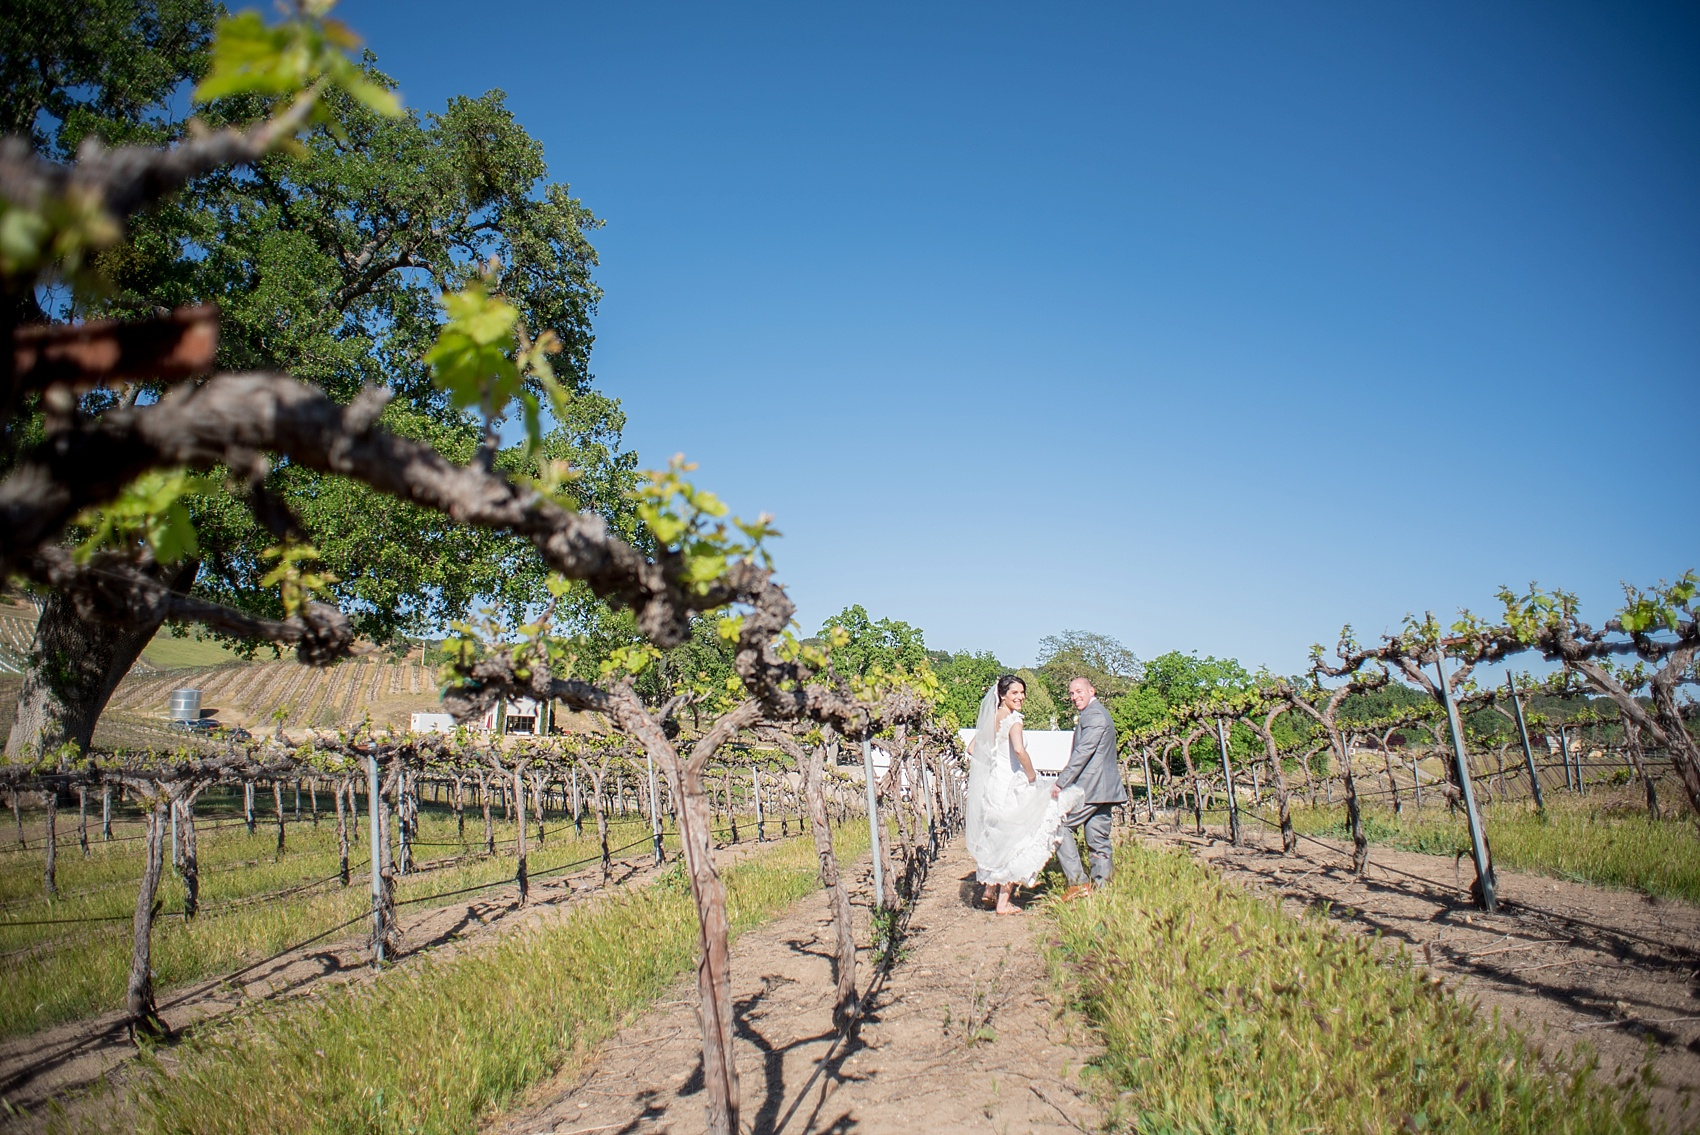 Vineyard elopement, bride and groom photos, with Mikkel Paige, destination wedding photographer. Held at HammerSky Vineyard, south of San Francisco.